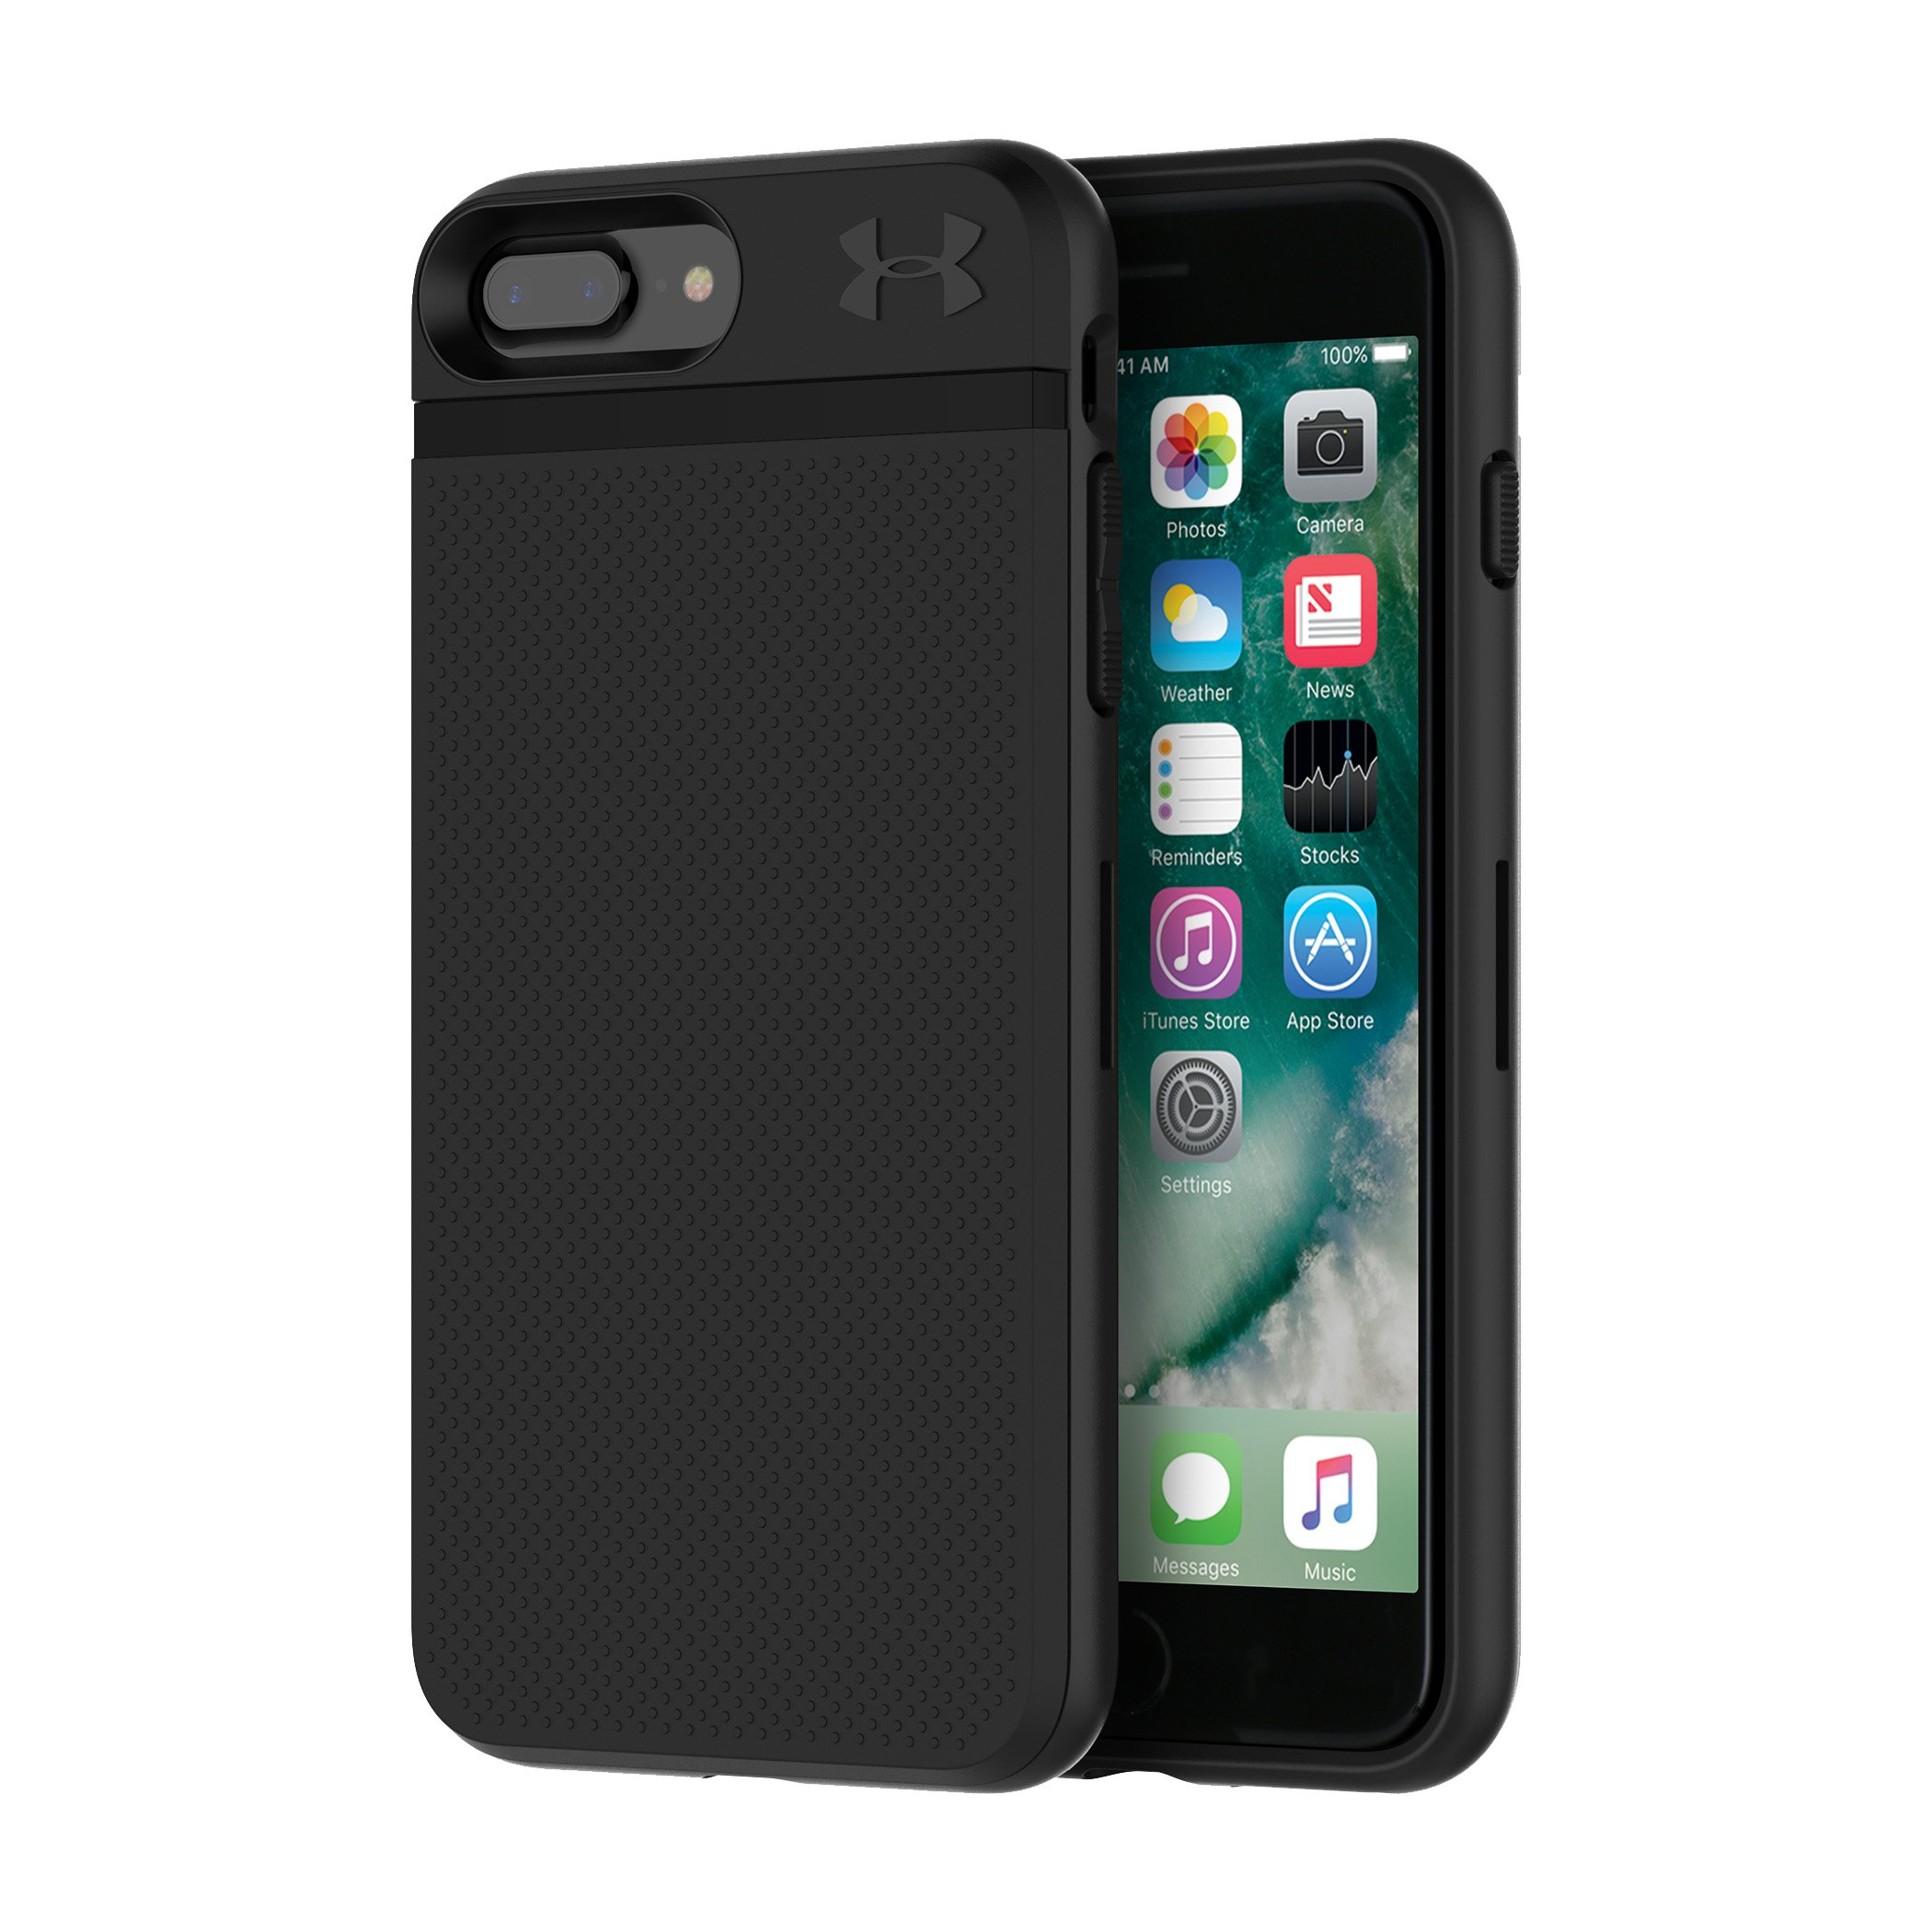 stash cases UA Protect Stash Case for iPhone 8 Plus/7 Plus GREAT PHONE CASE...I love that I can store my credit cards & ID in the back of the phone and no one can see it, plus it's really easy to open with one hand....I would definitely recommend this to others to either buy for themselves or as a gift.